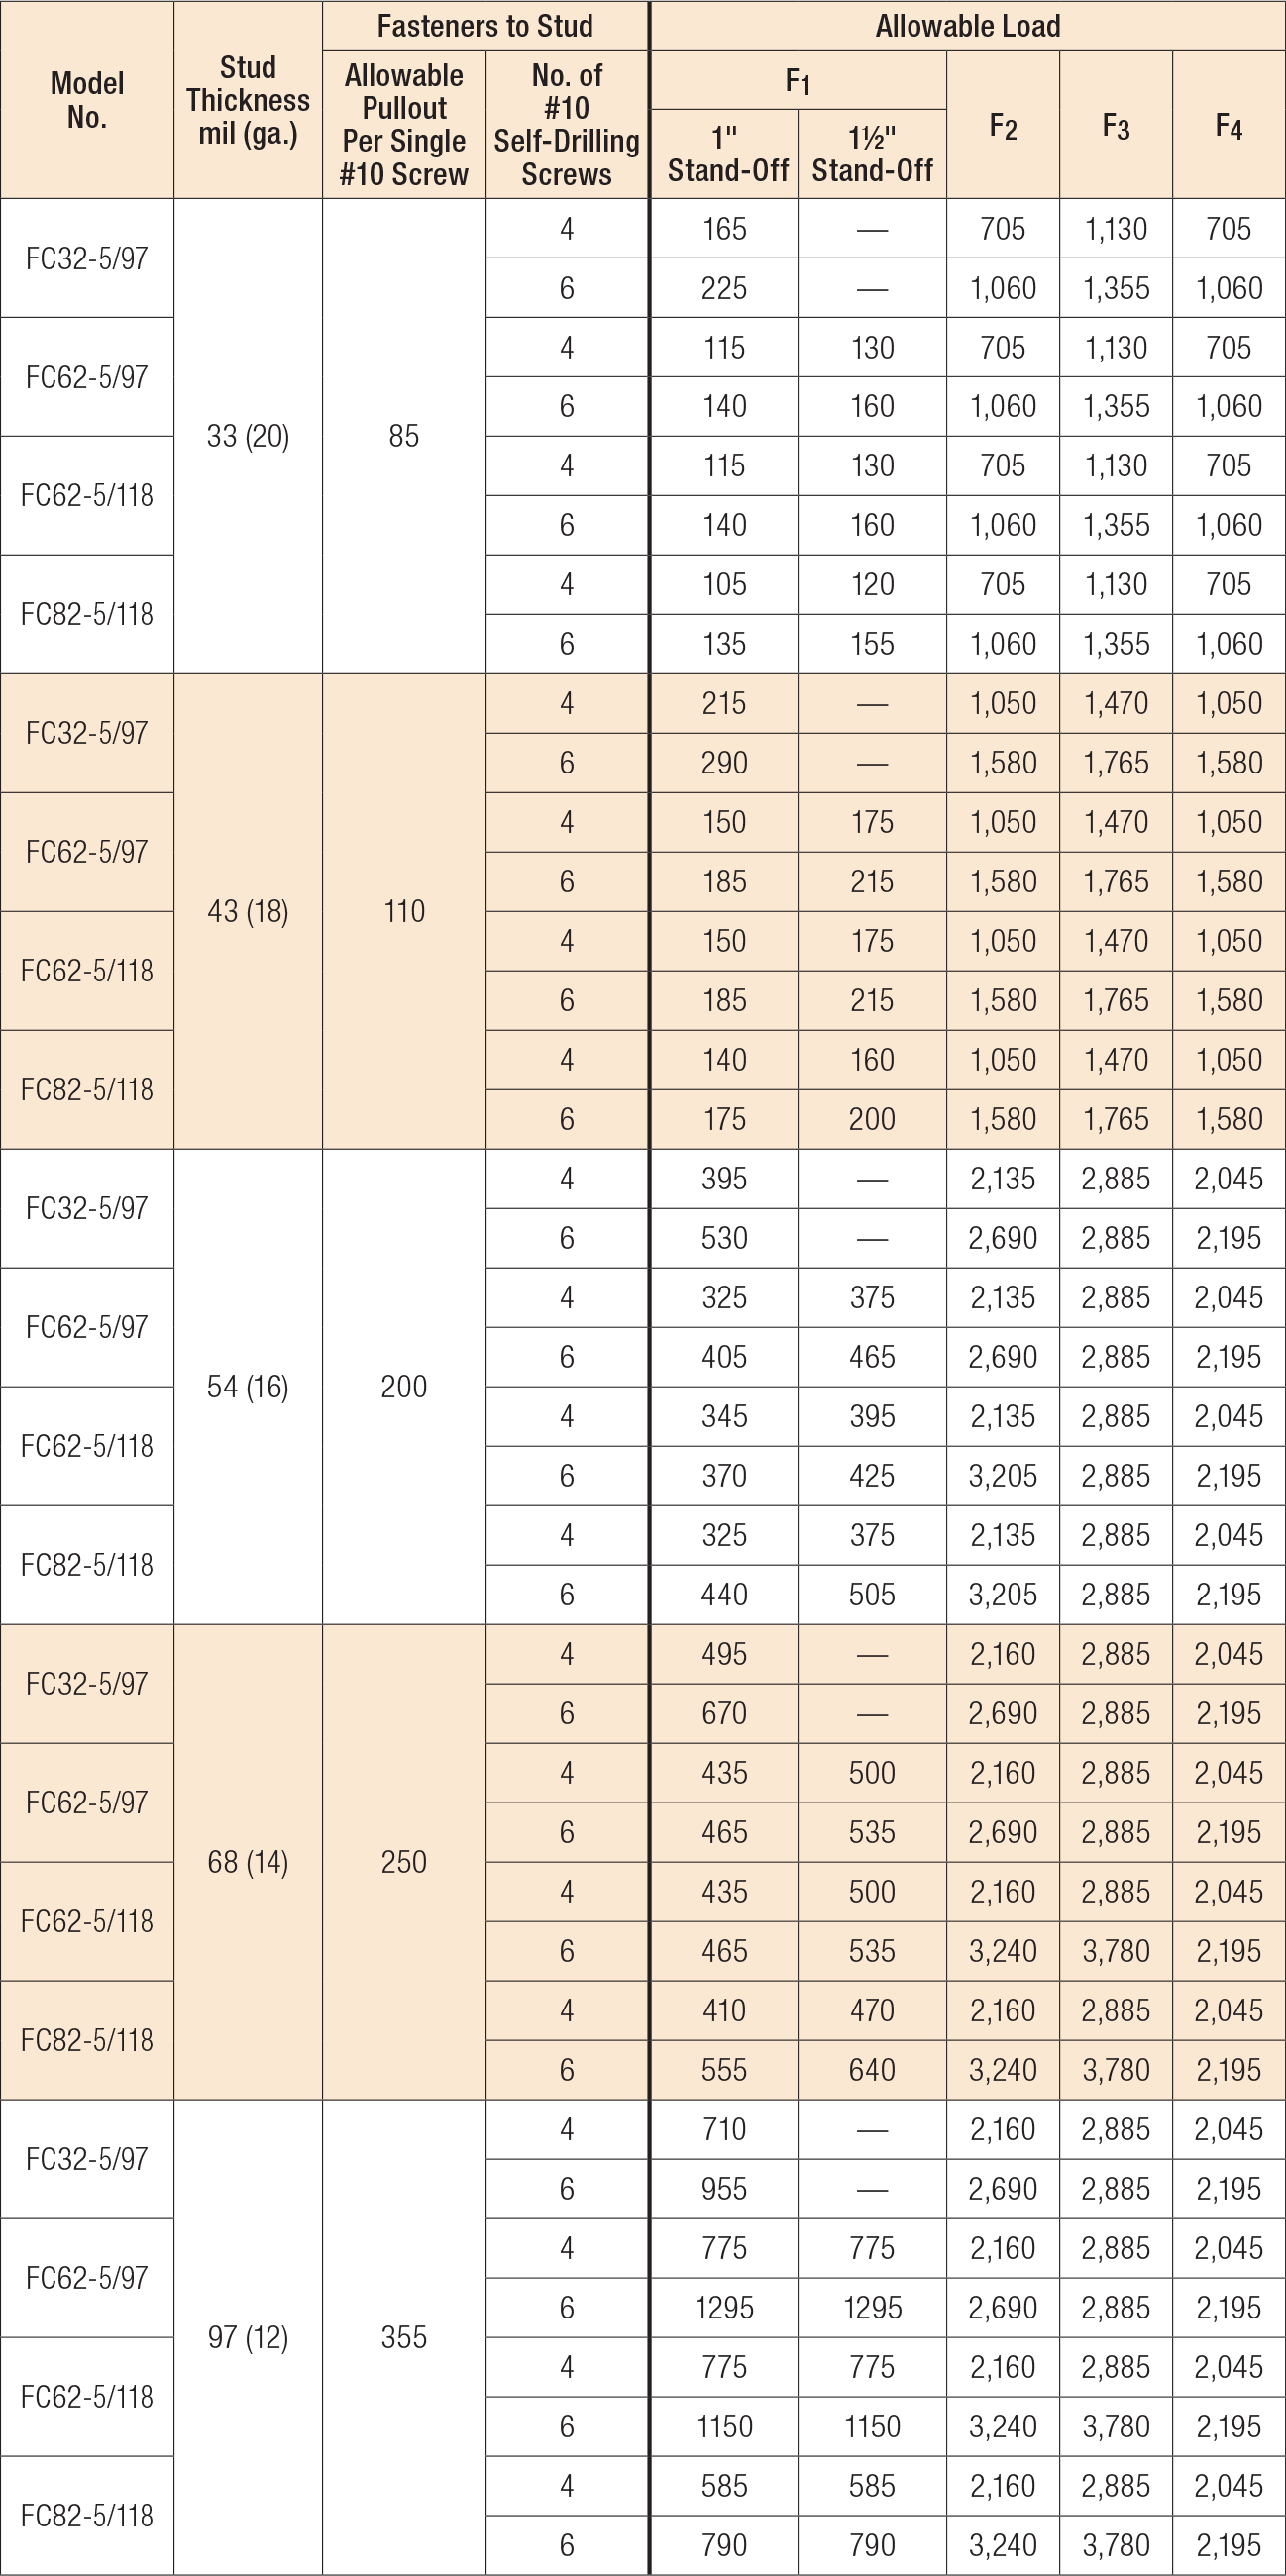 Load Table - FC Allowable Connector Loads (lb.)